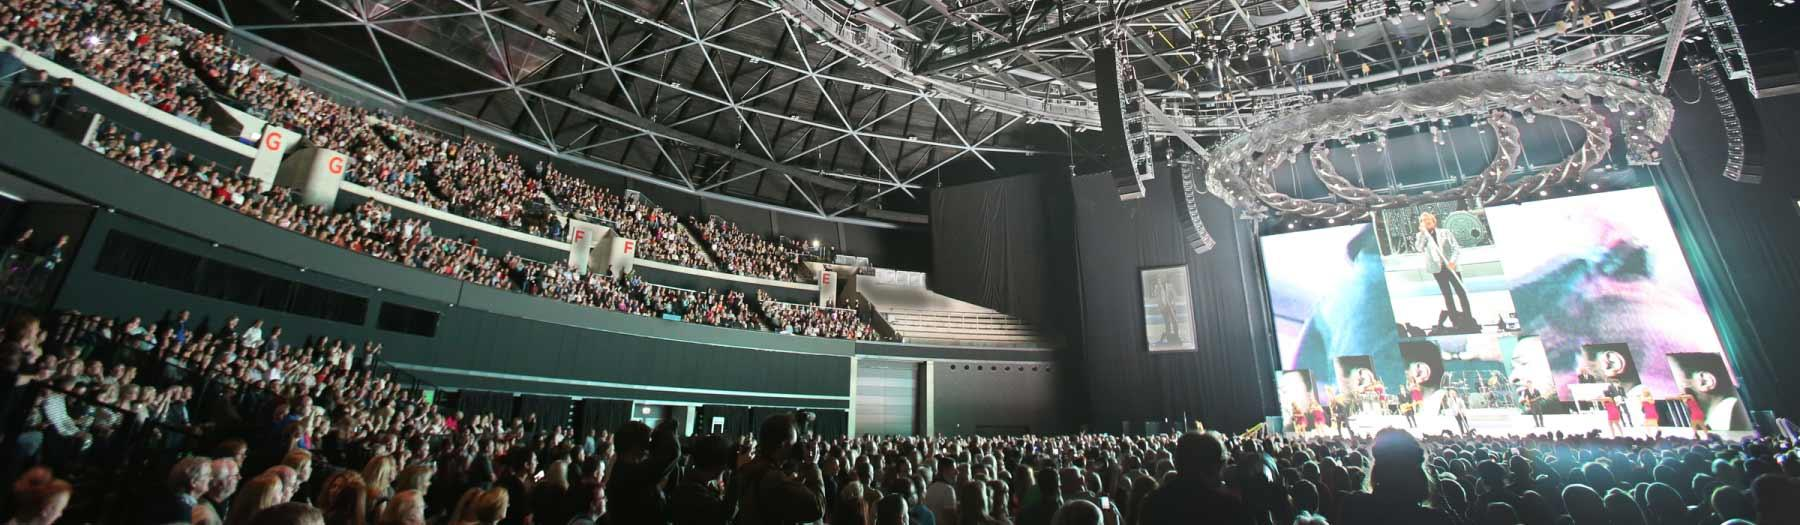 Image: Interior, SSE Hydro. Credit: The SSE Hydro.